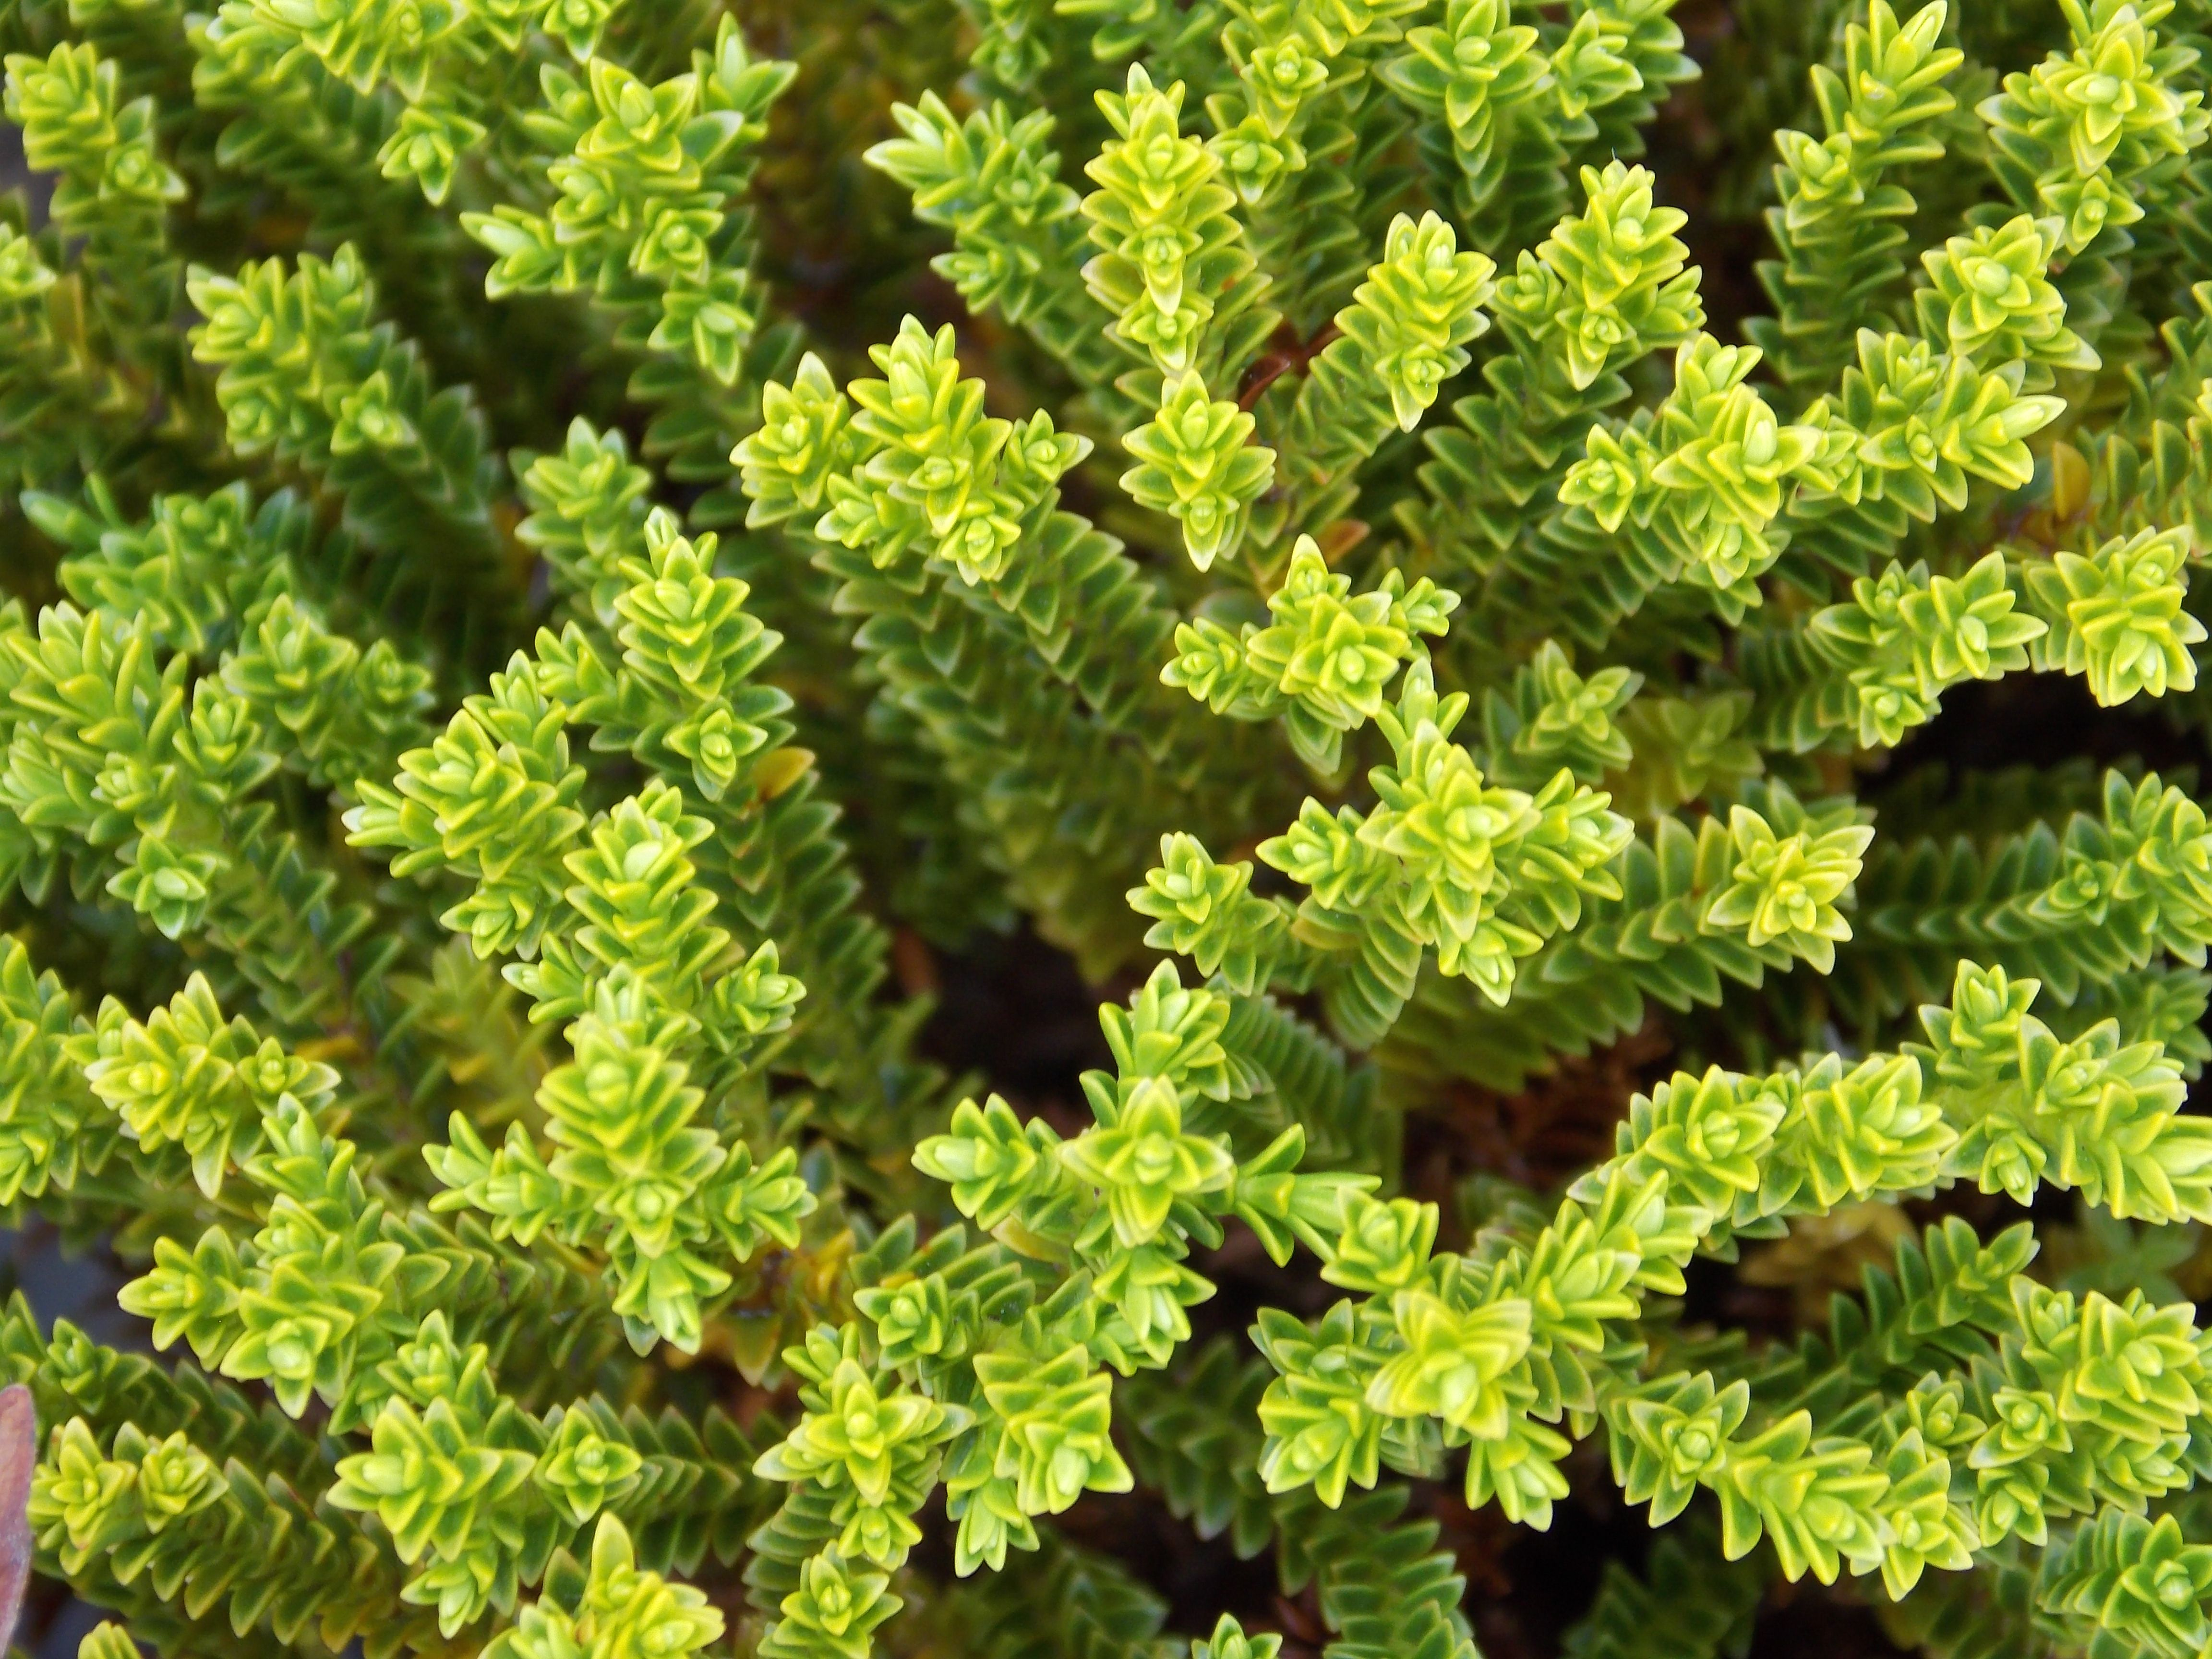 Hebe Green Globe is a low pact evergreen shrub with tiny